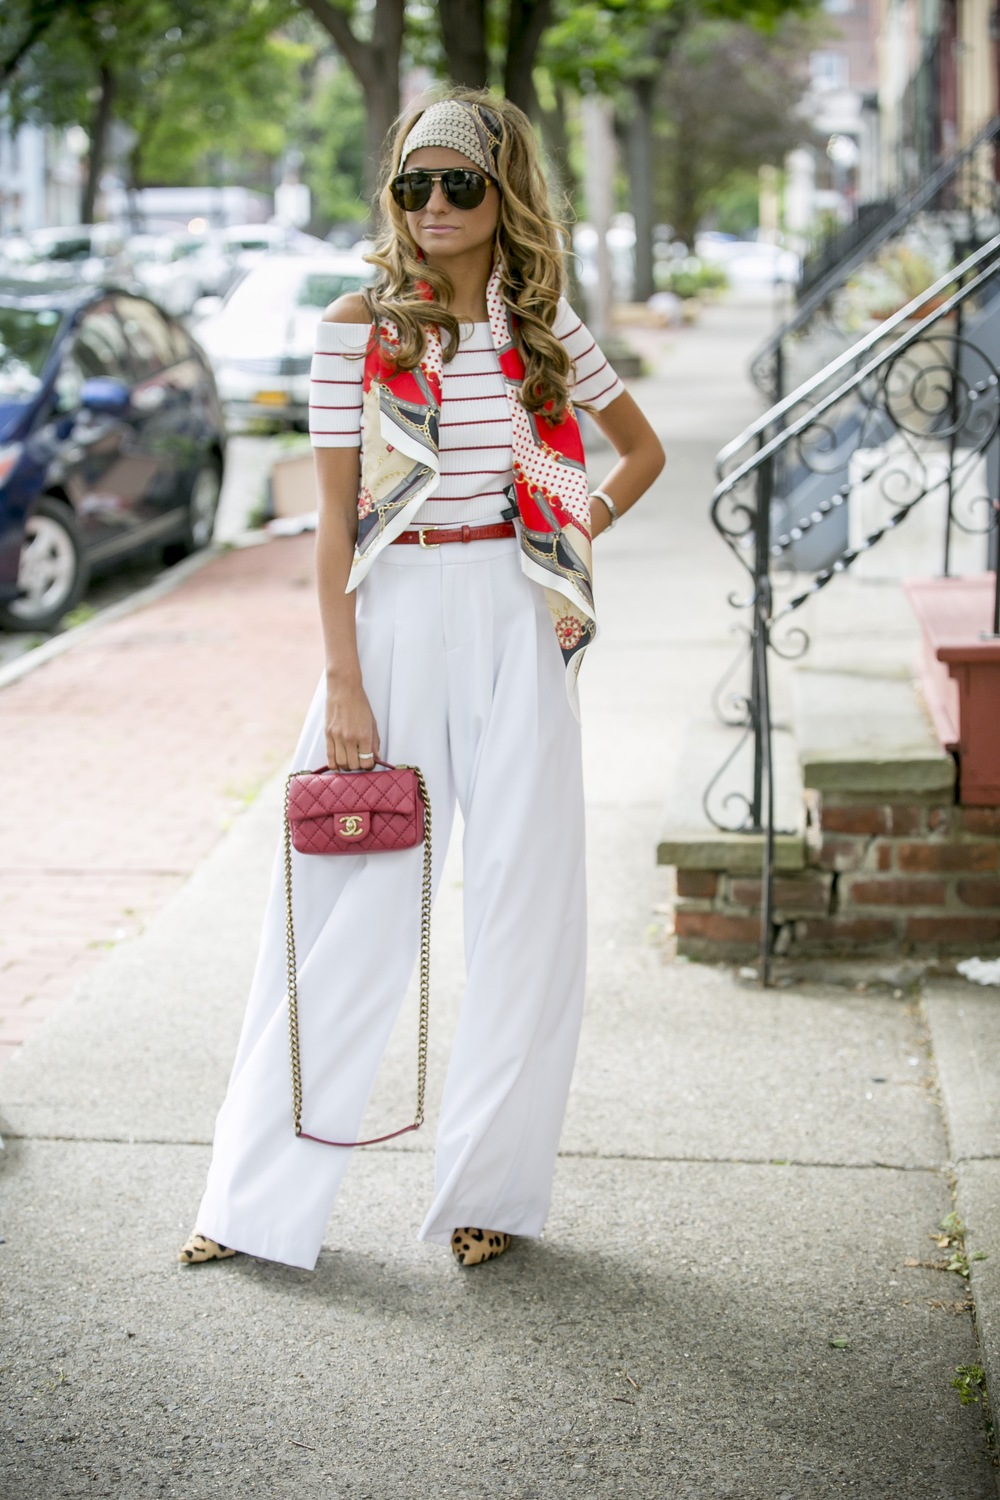 Streetstyle fashion blogger Lauren Recchia seen in Alice and Olivia wide leg trousers with an off of the shoulders sweater and head scarf